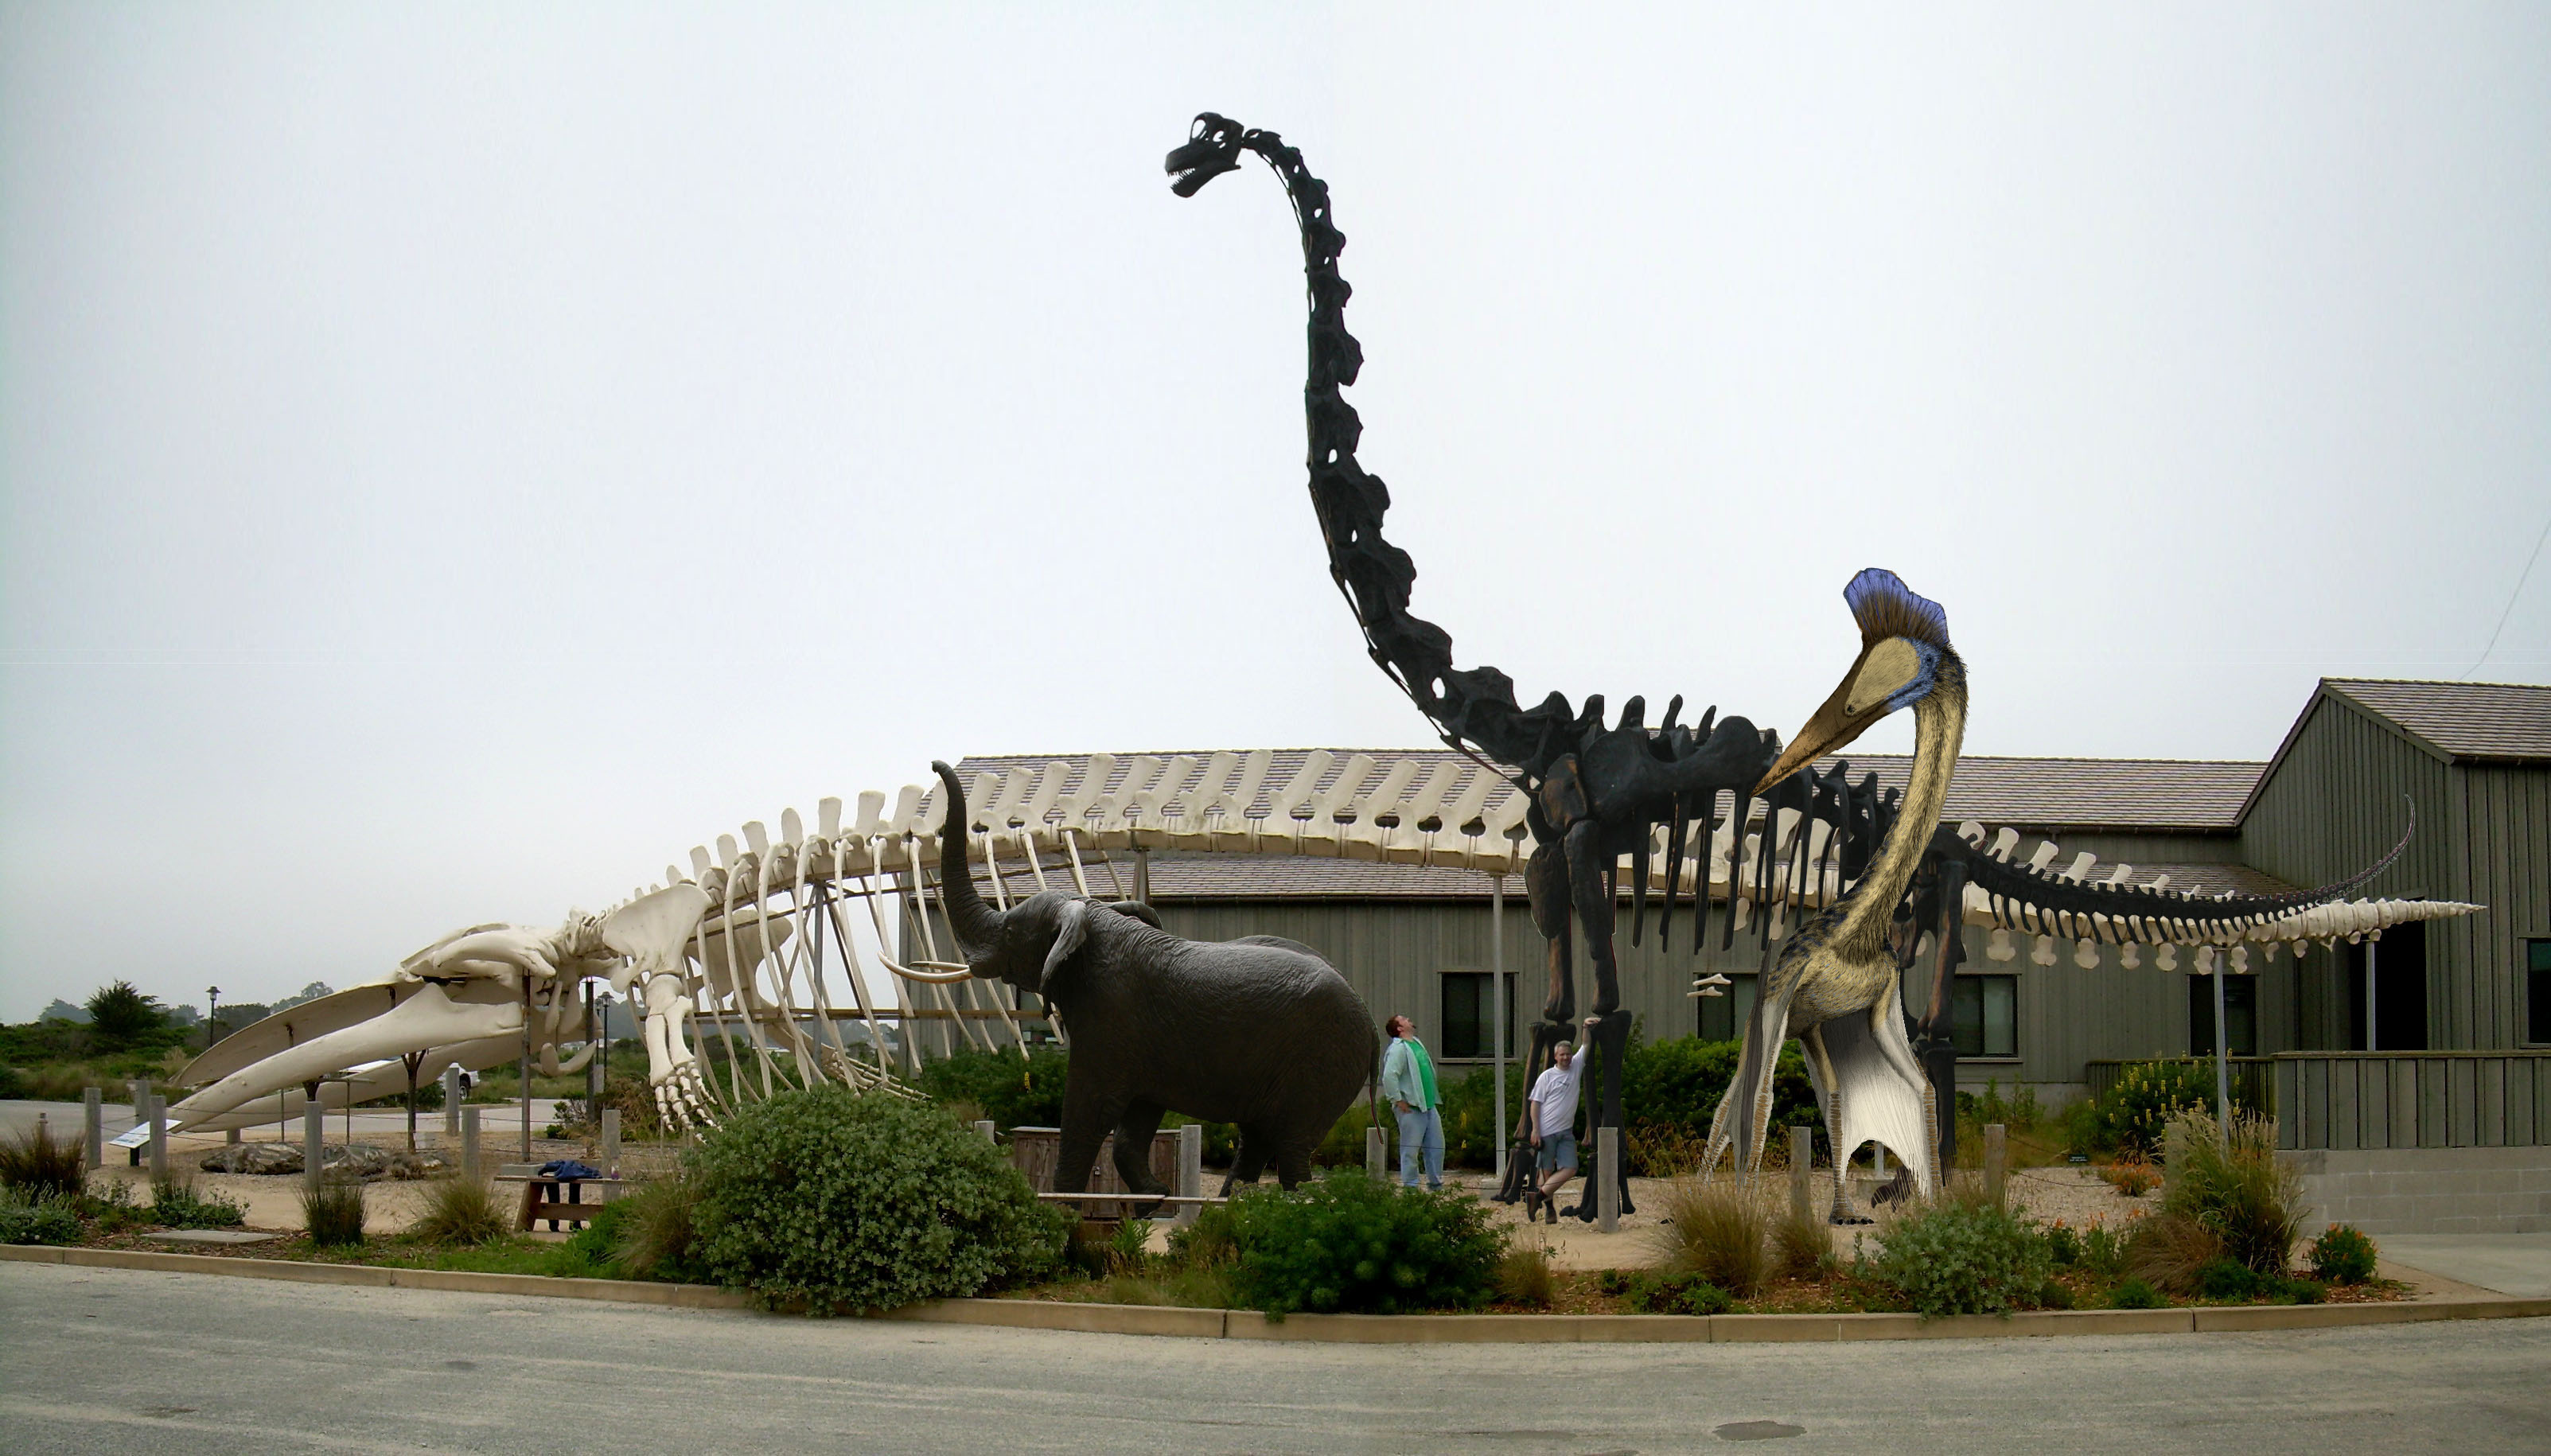 http://svpow.files.wordpress.com/2008/06/blue-whale-and-brachiosaurus-and-hatzegopteryx.jpg